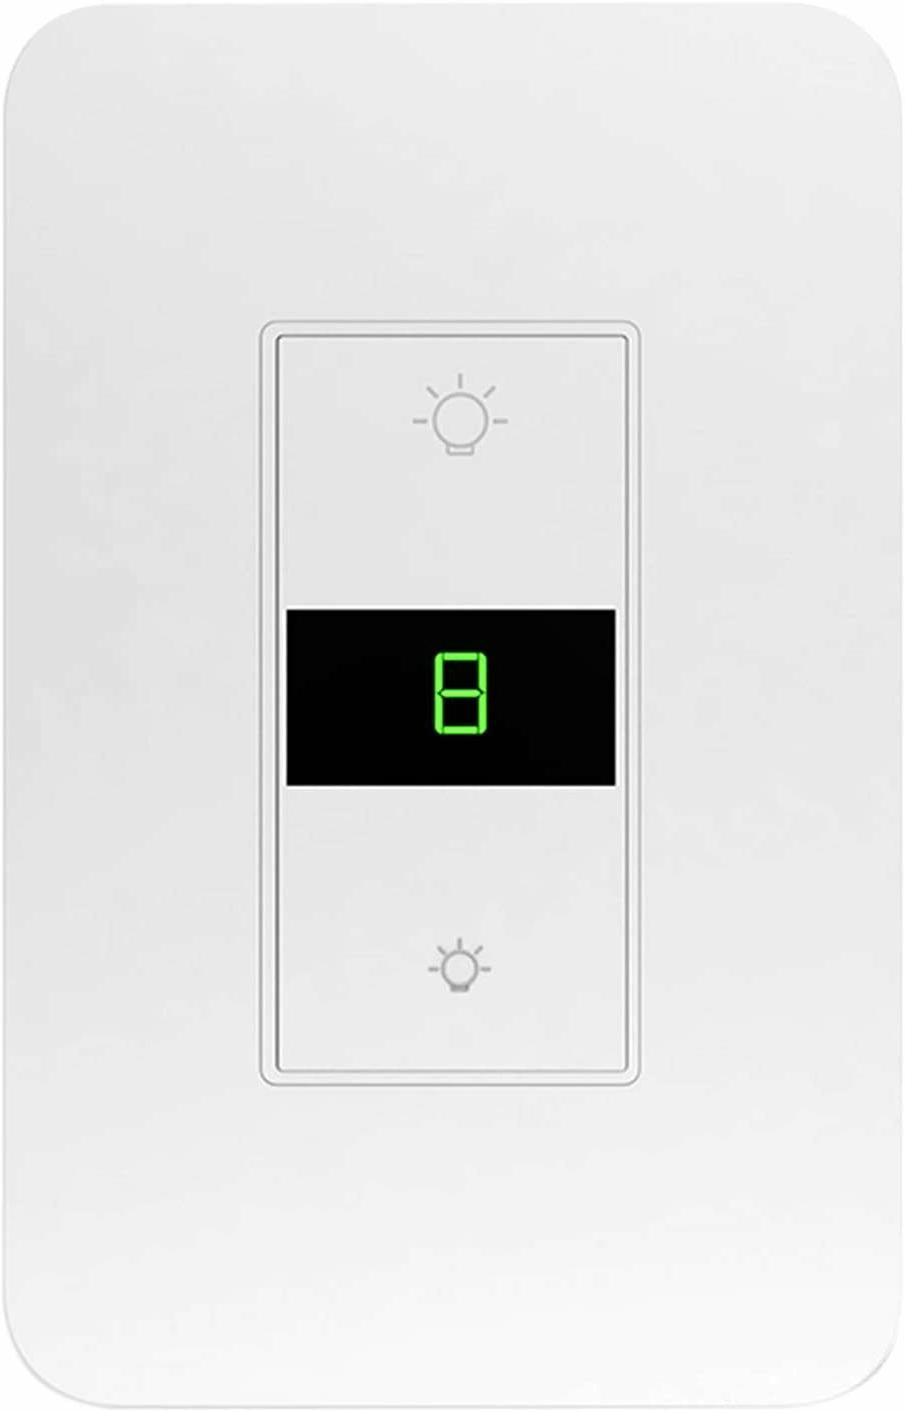 smart dimmer light switch works with alexa